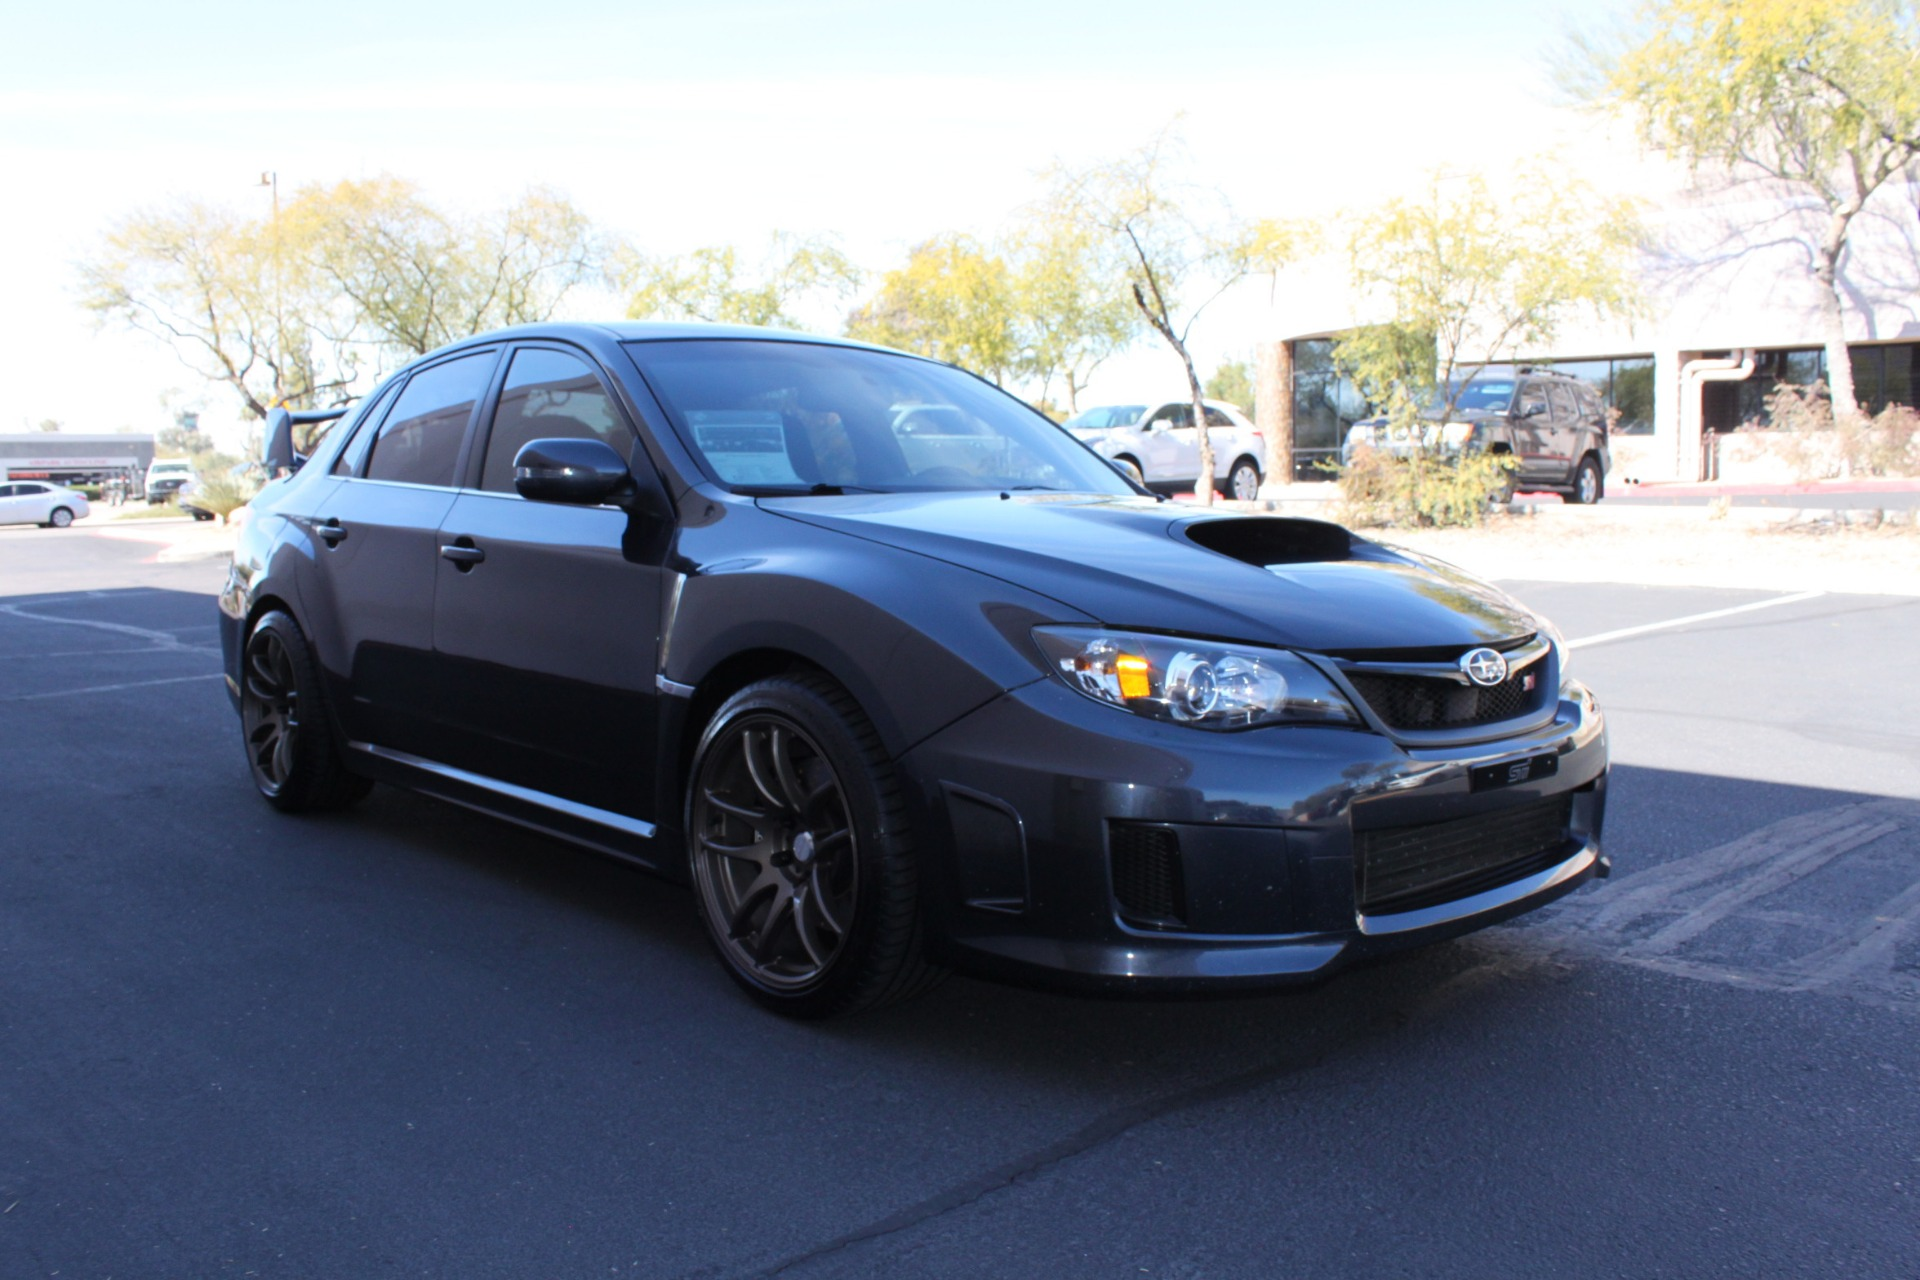 Used-2011-Subaru-Impreza-Sedan-WRX-STI-Lincoln